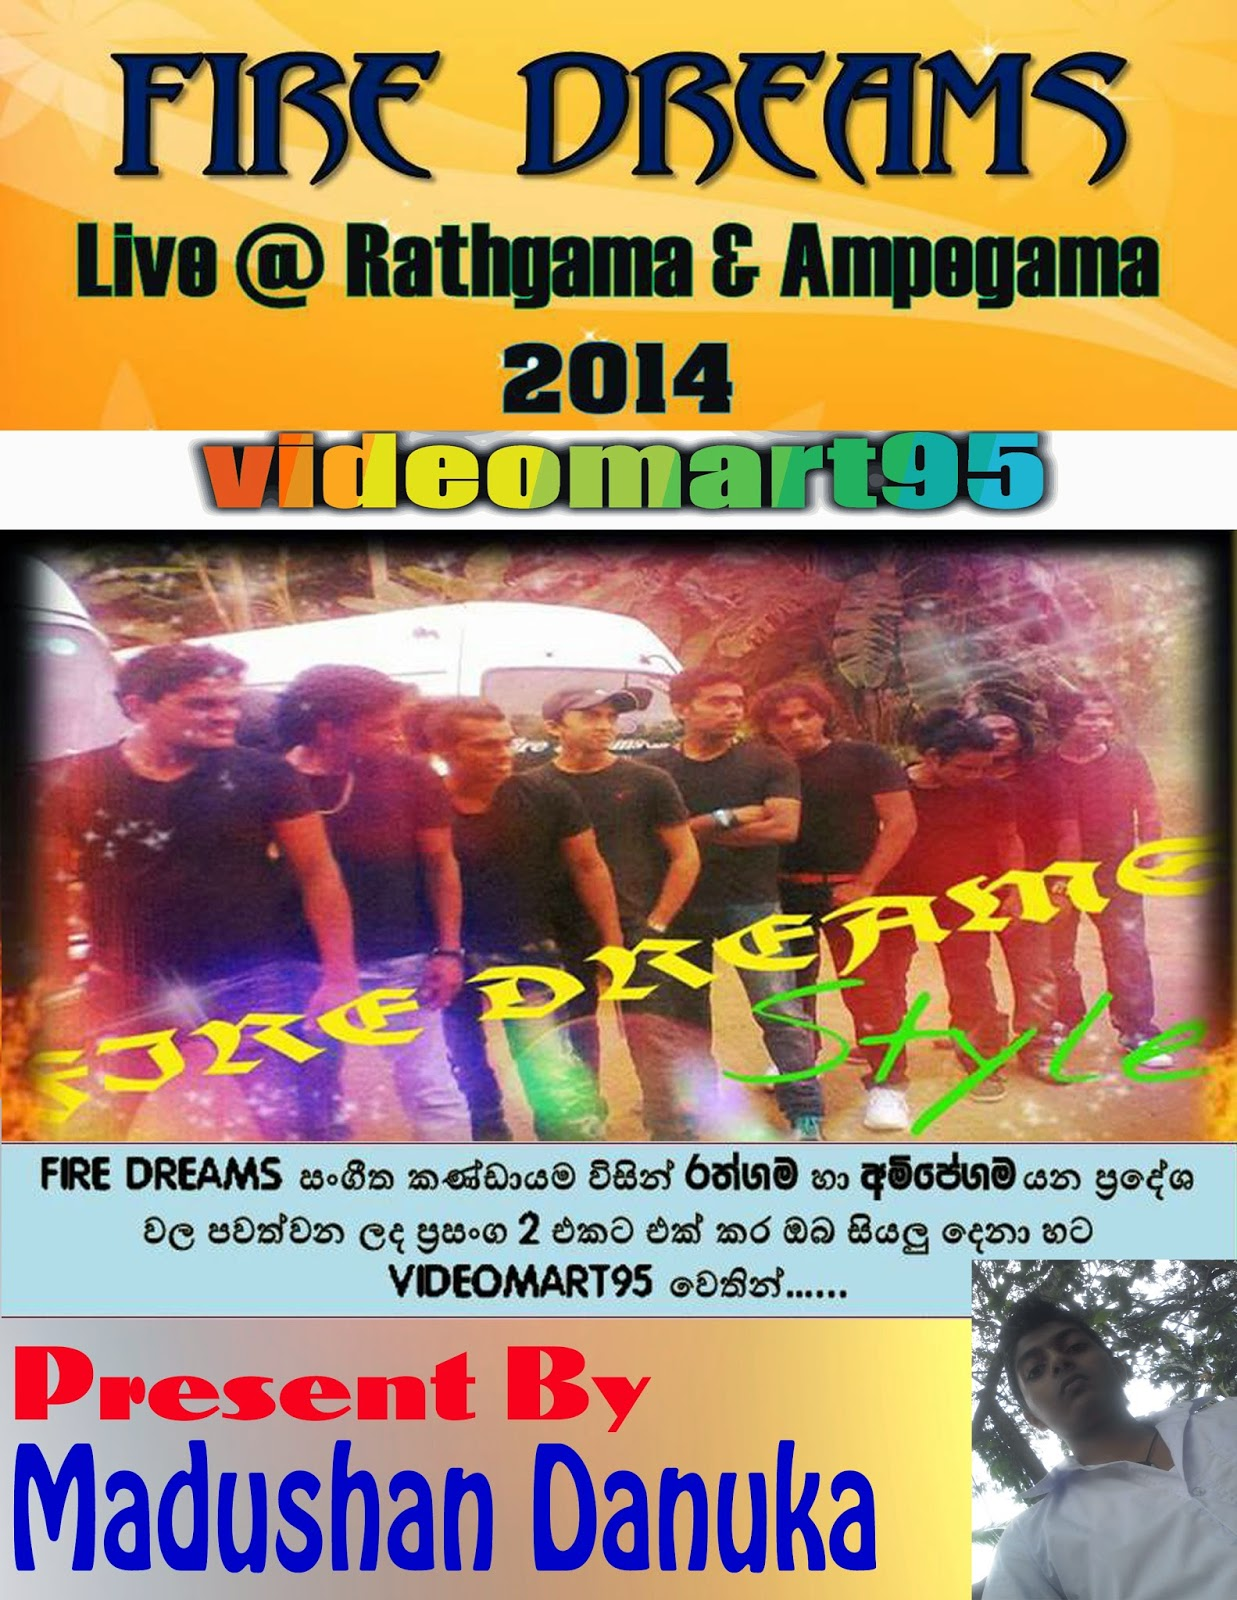 FIRE DREAMS LIVE AT RATHGAMA  AMPEGAMA 2014